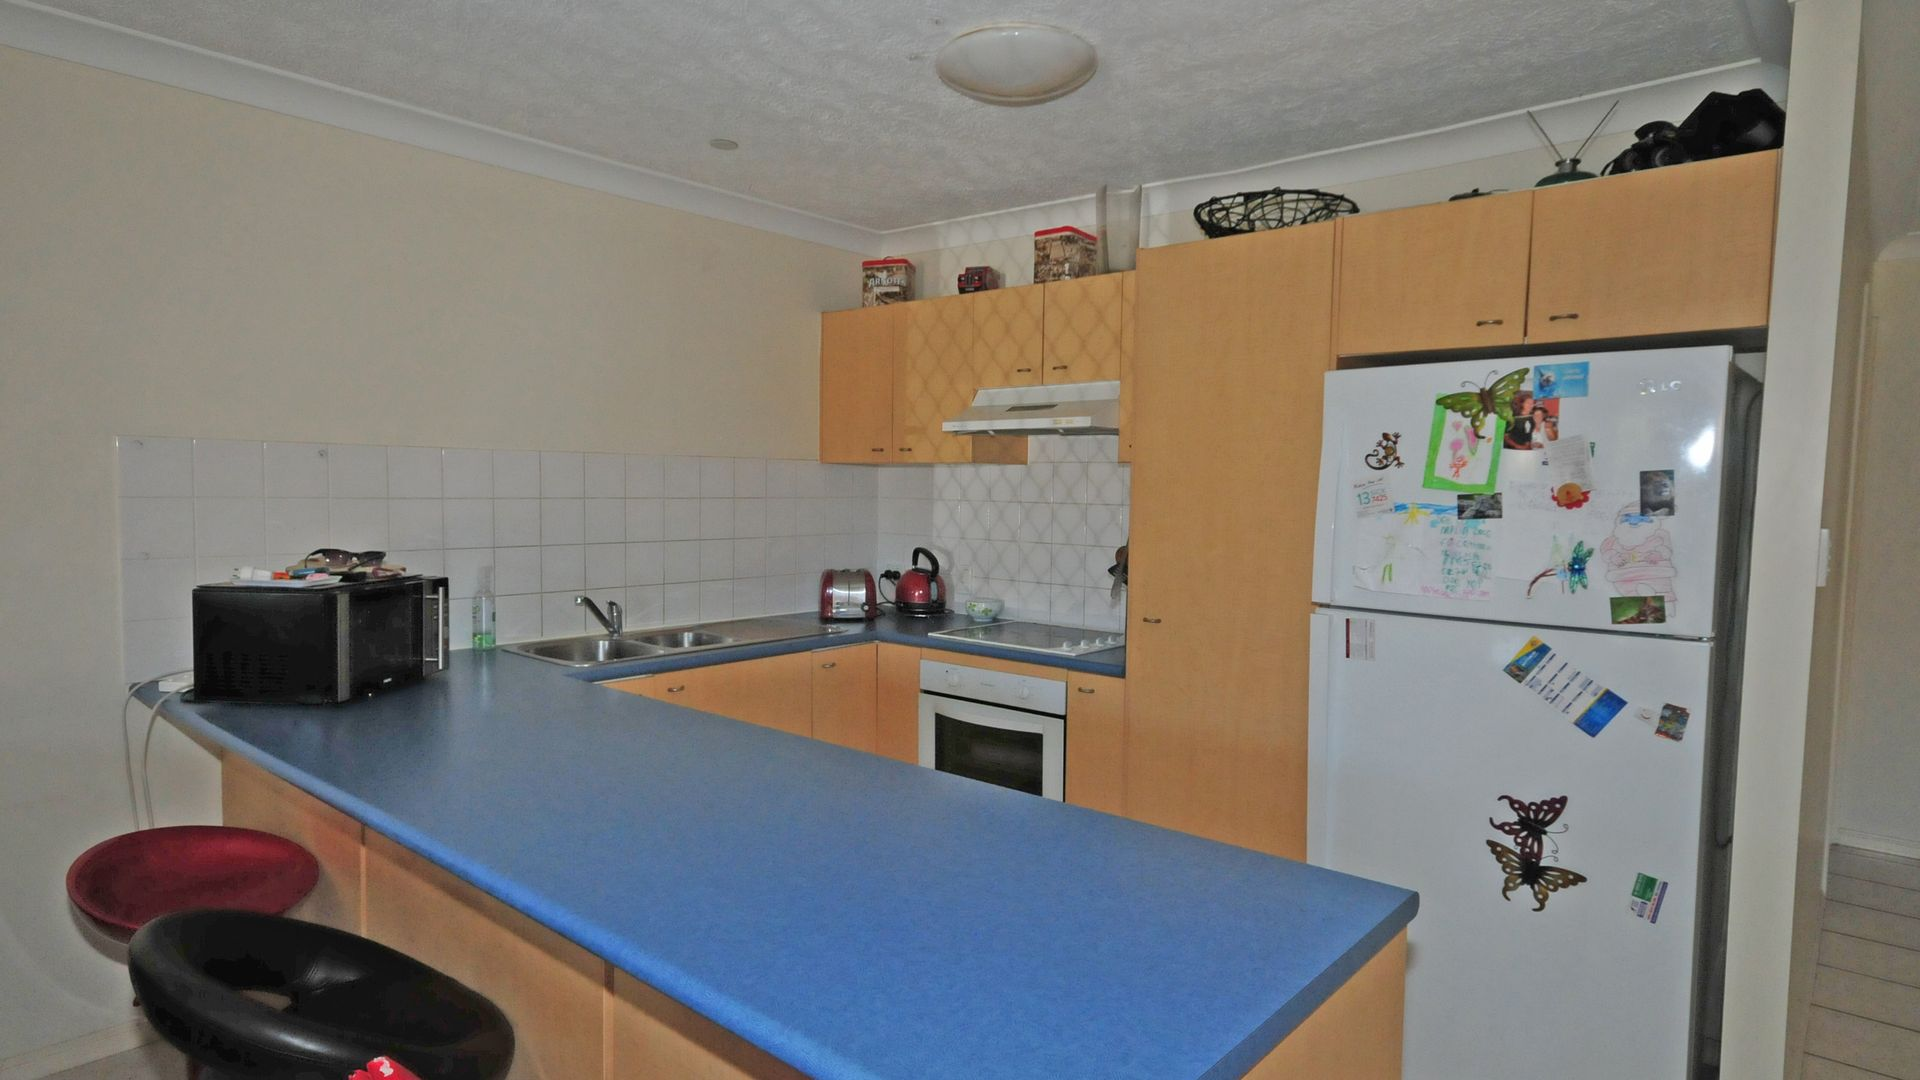 719/2 Nicol  way, Brendale QLD 4500, Image 2